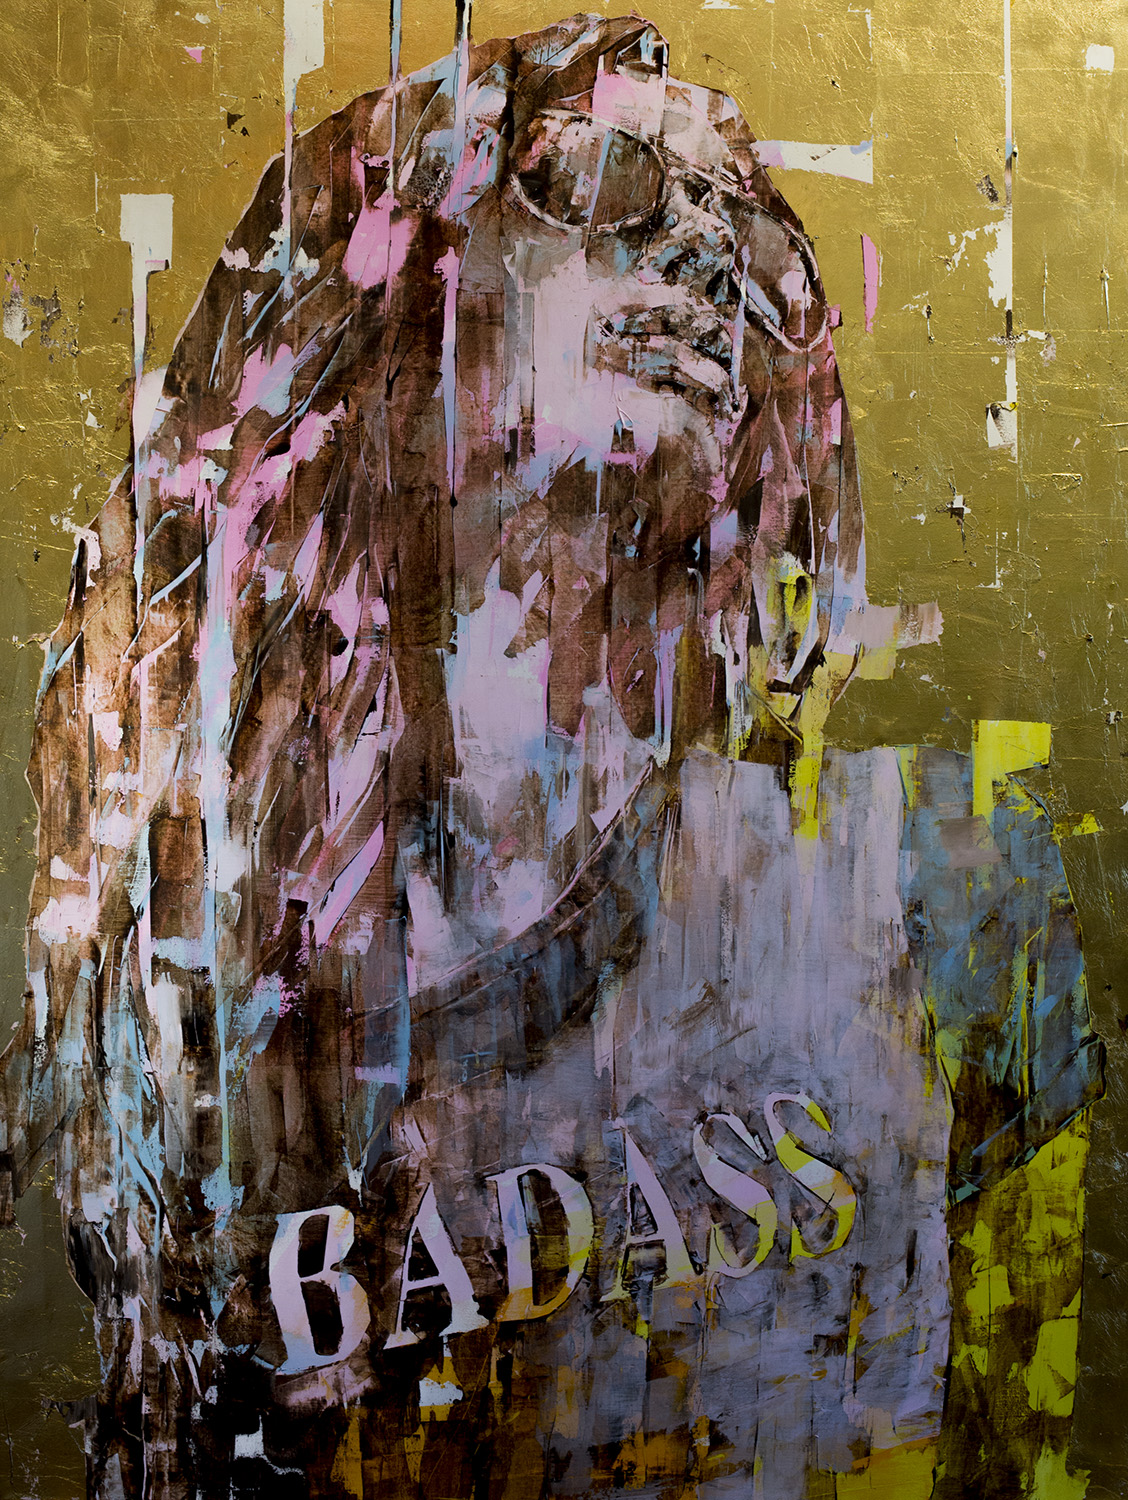 Super gold Badass 55x73.jpg